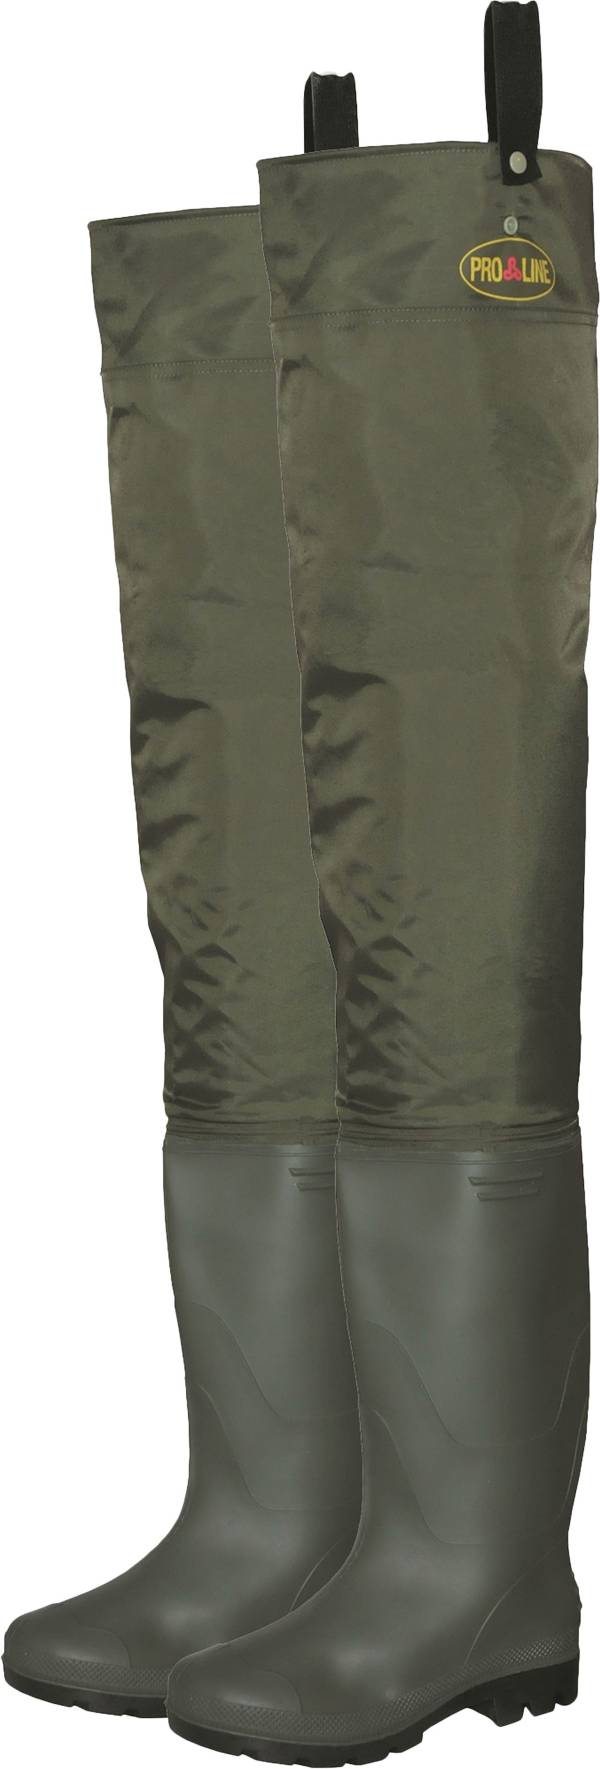 Pro Line PVC Hip Waders product image